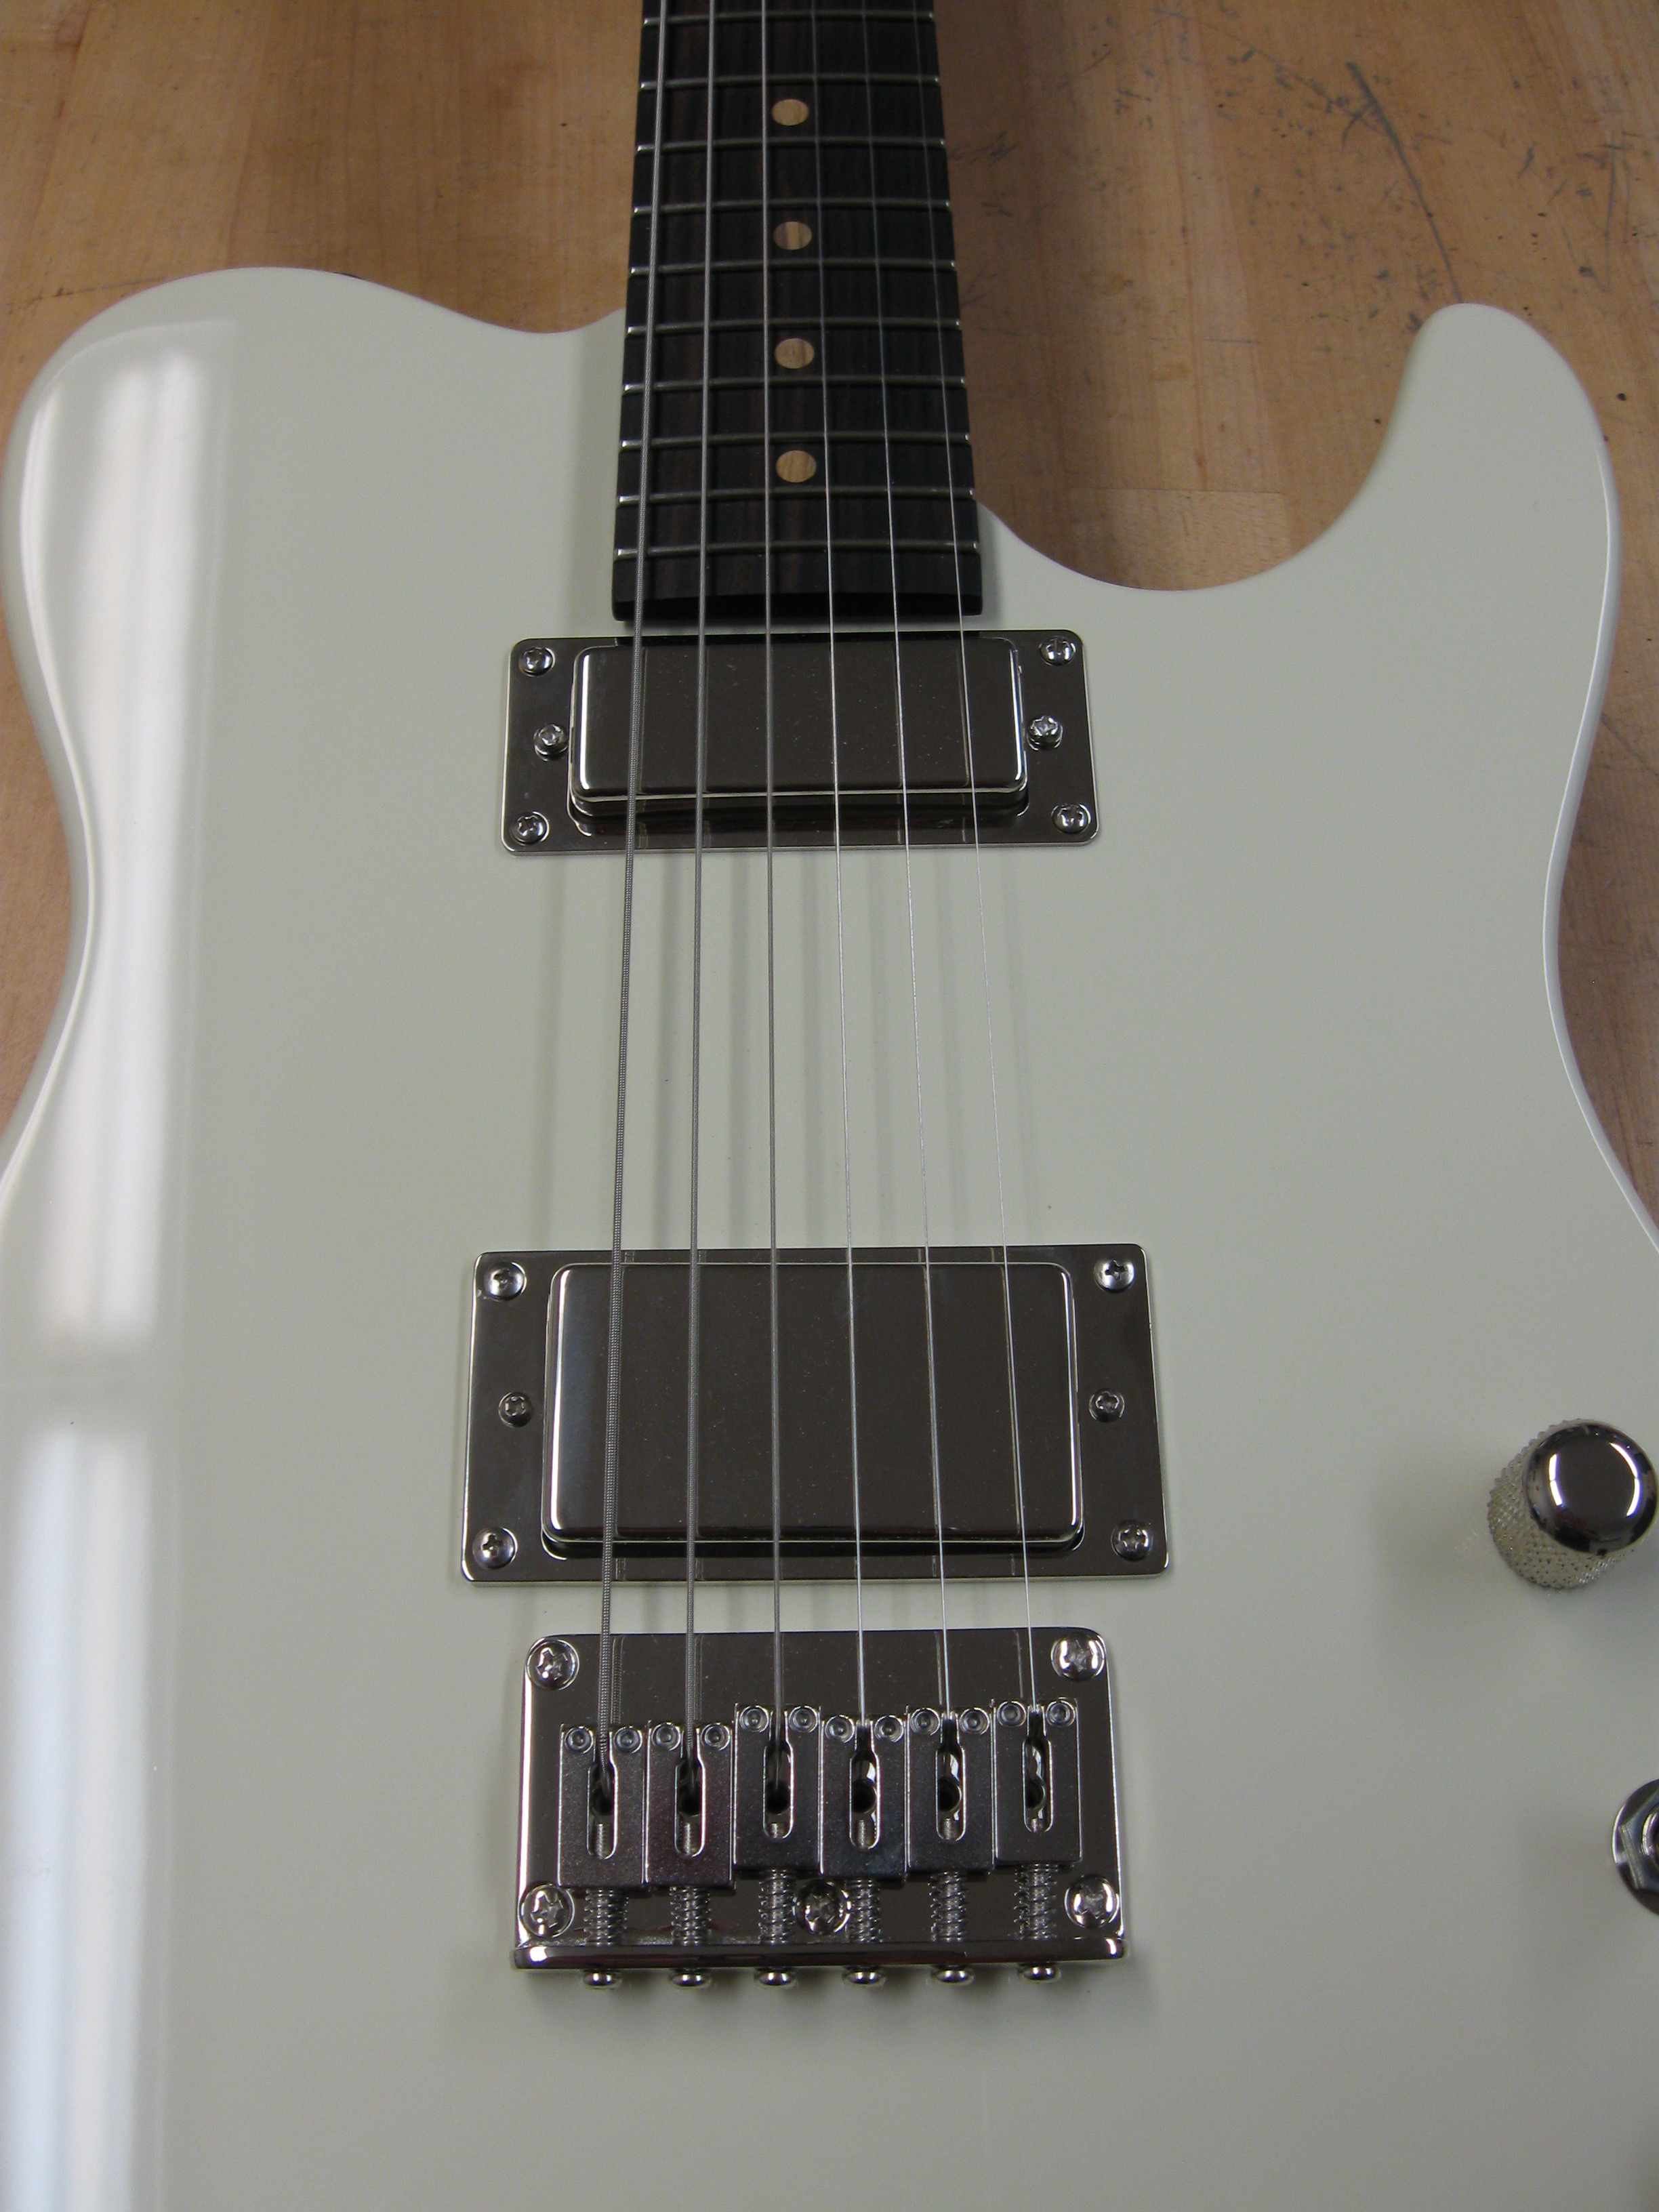 VTH-2 and 225 FB Mini-humbucker with nickel covers